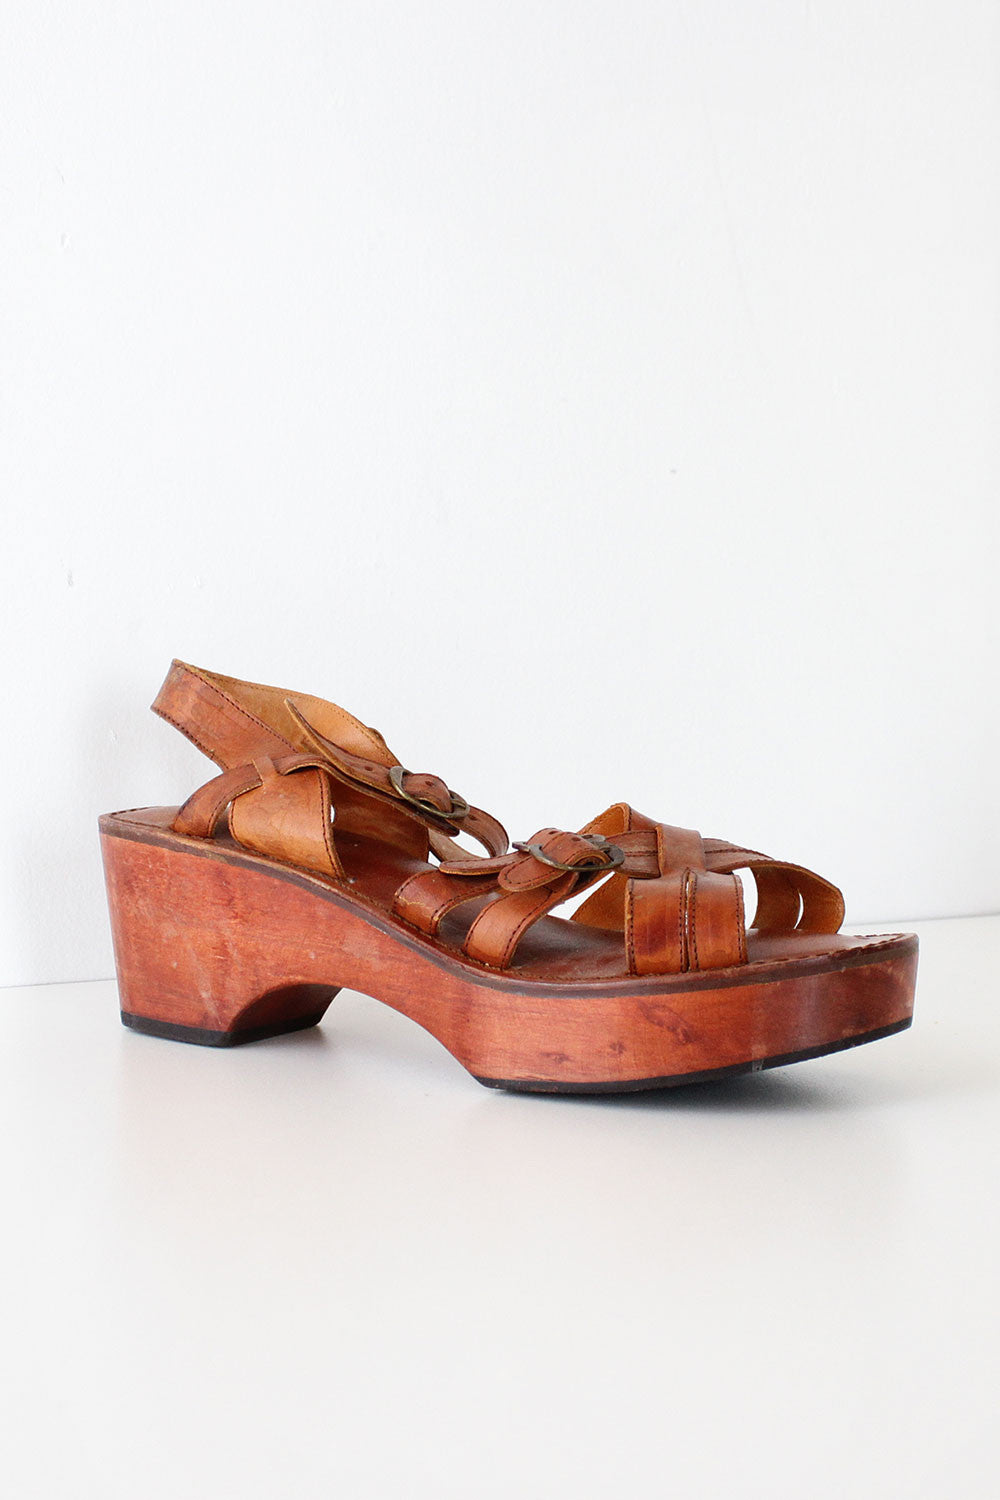 8da428174b7 Jeanie Wood Wedge Sandals 9 1 2 – OMNIA